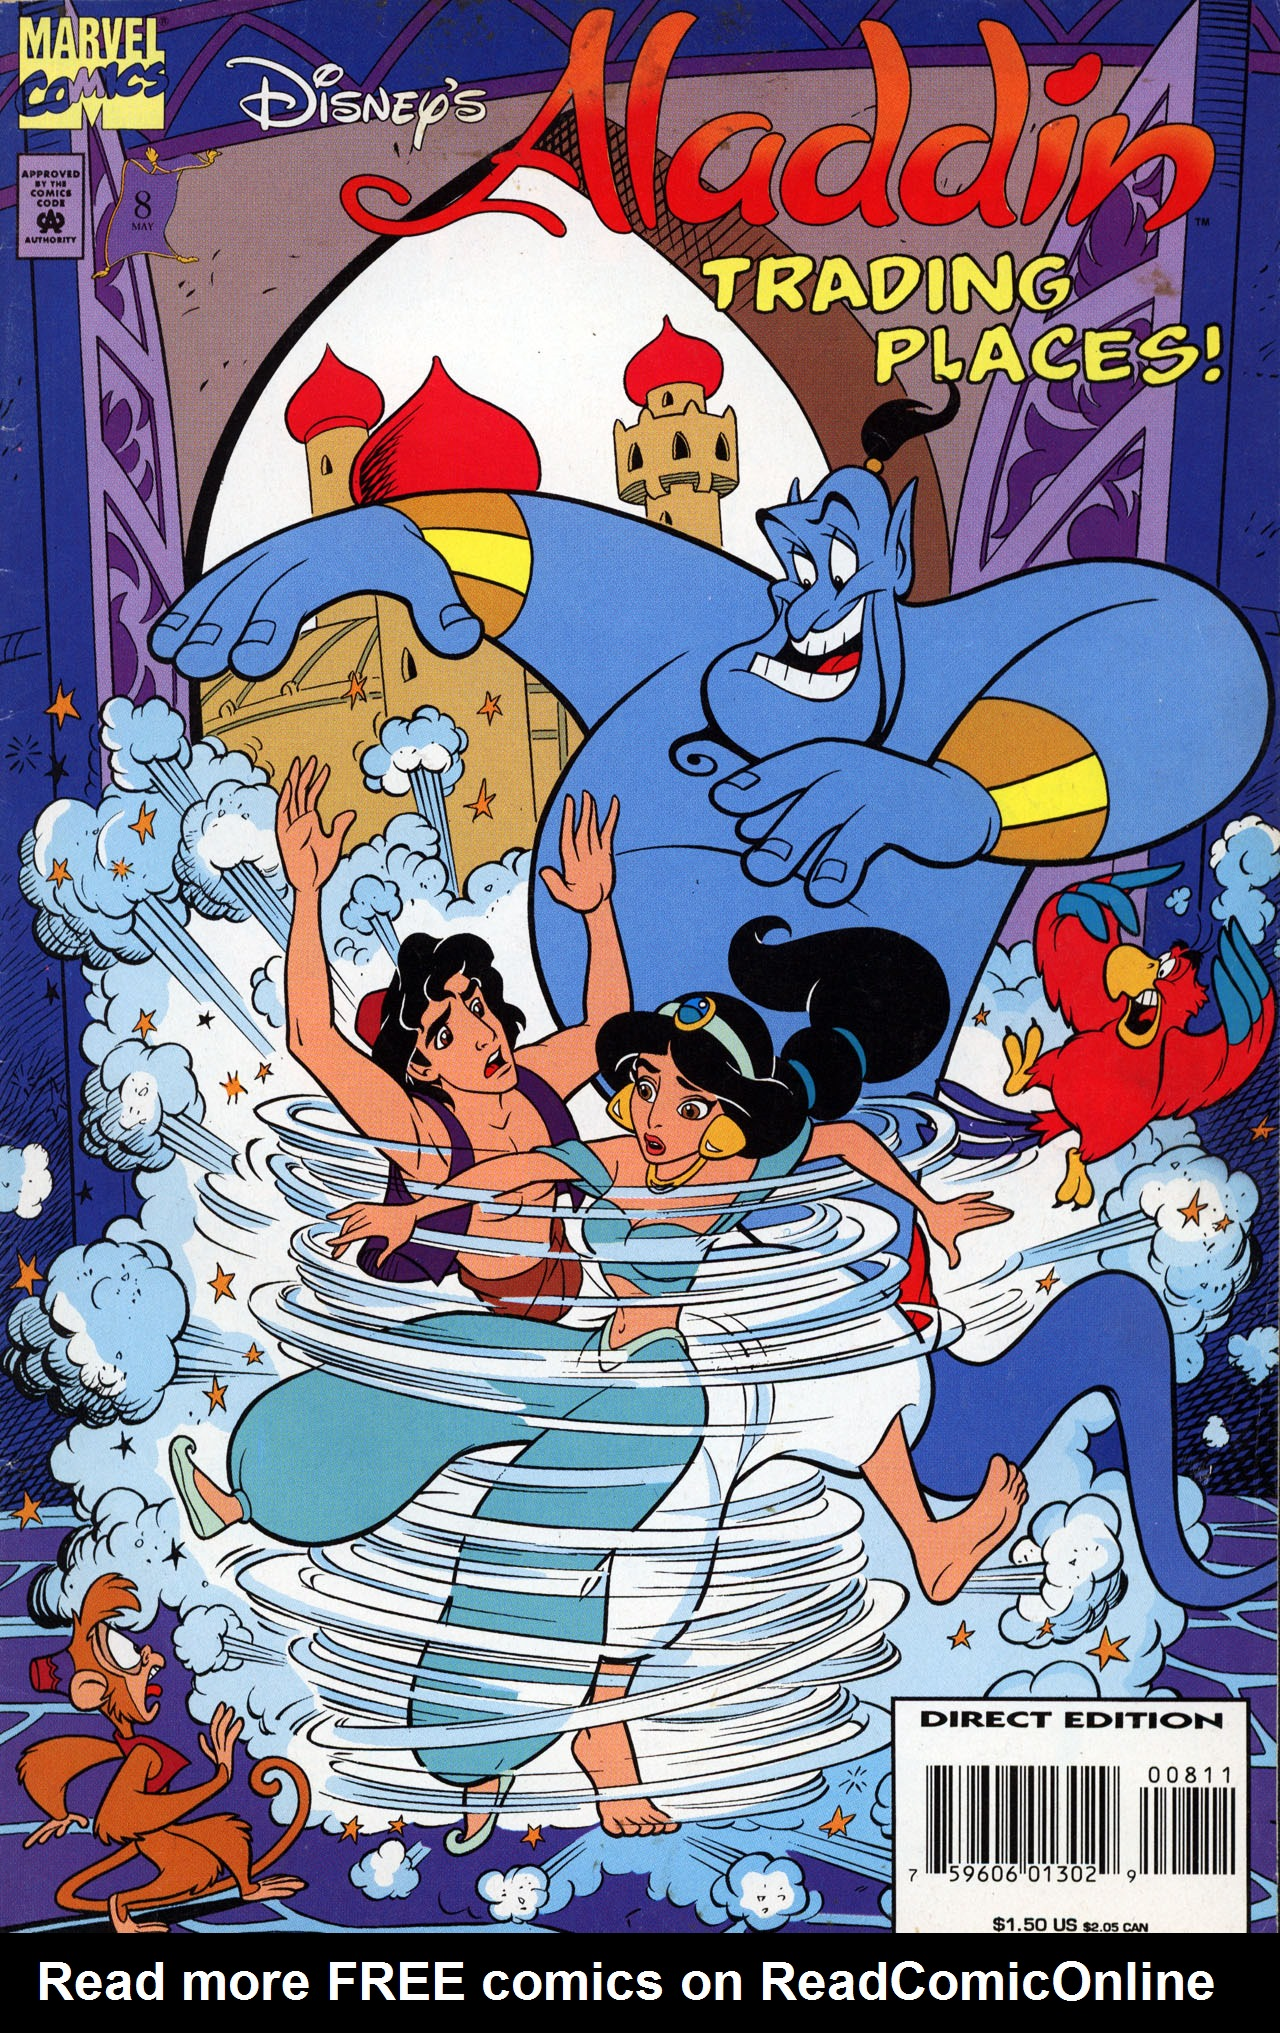 Free Disney Cartoon Porn Comics disney s aladdin | viewcomic reading comics online for free 2019